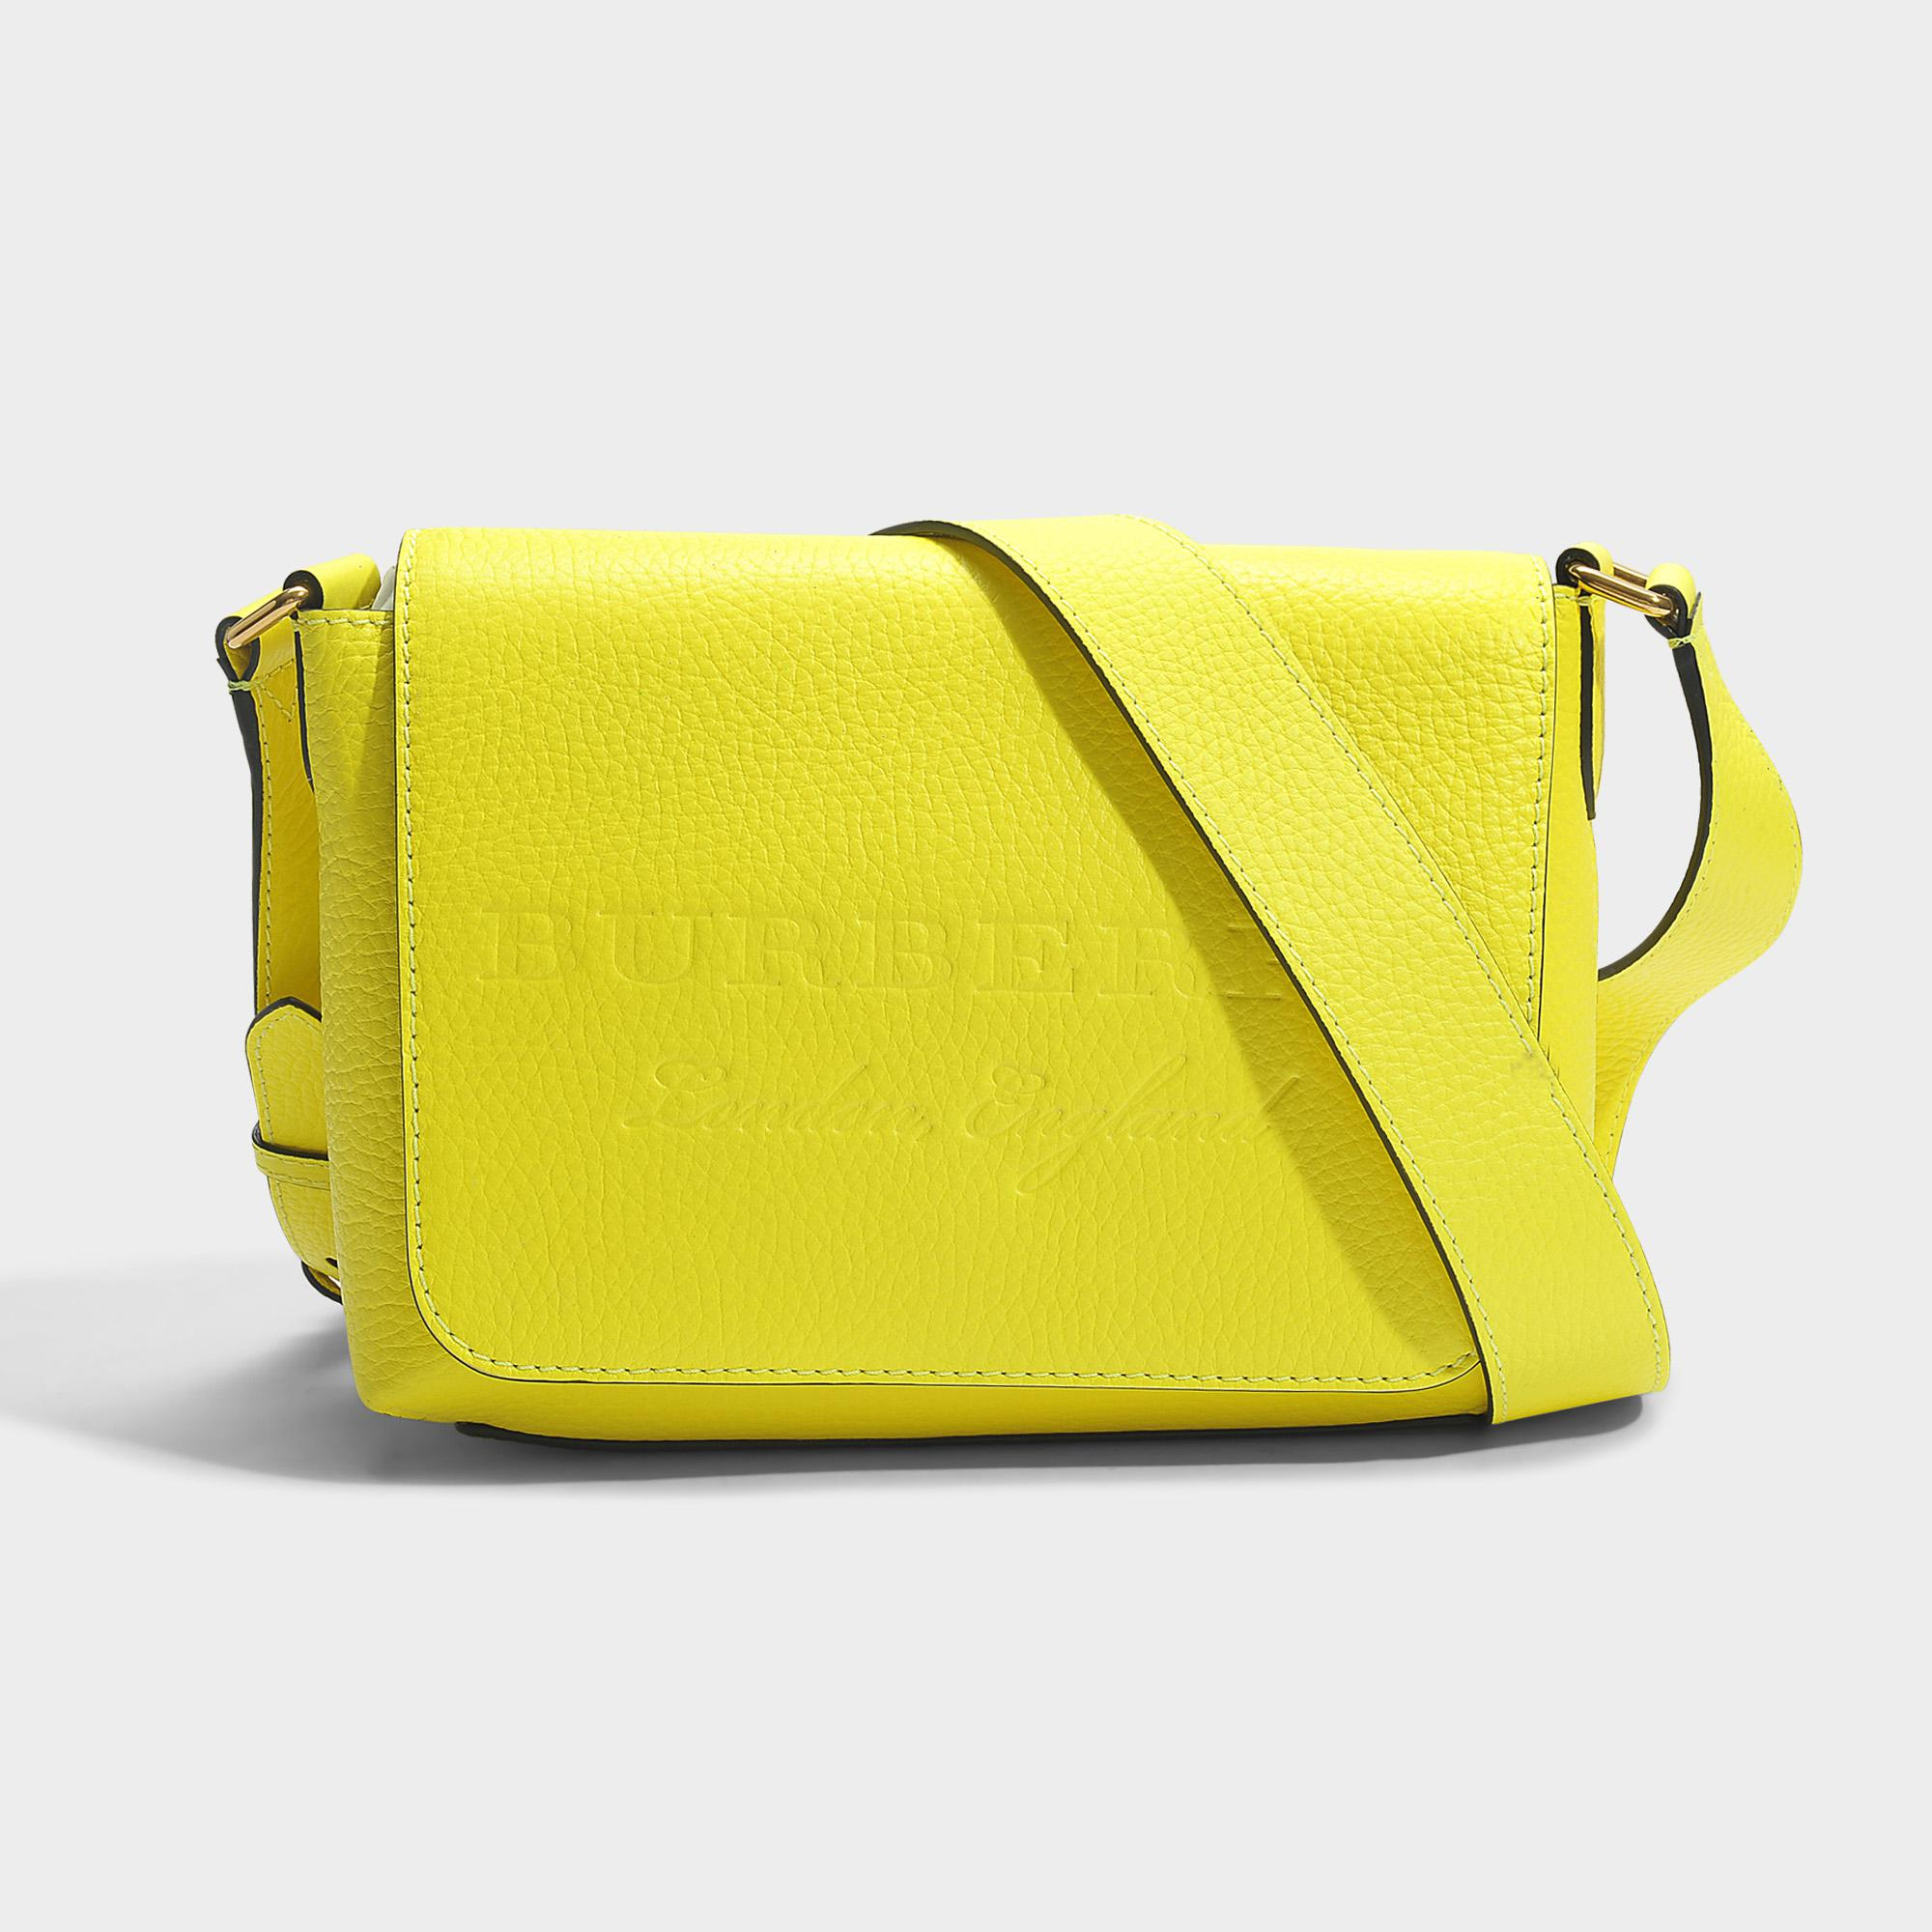 1321b9eb5a5 Lyst - Burberry Small Burleigh Crossbody Bag In Neon Yellow Grained ...